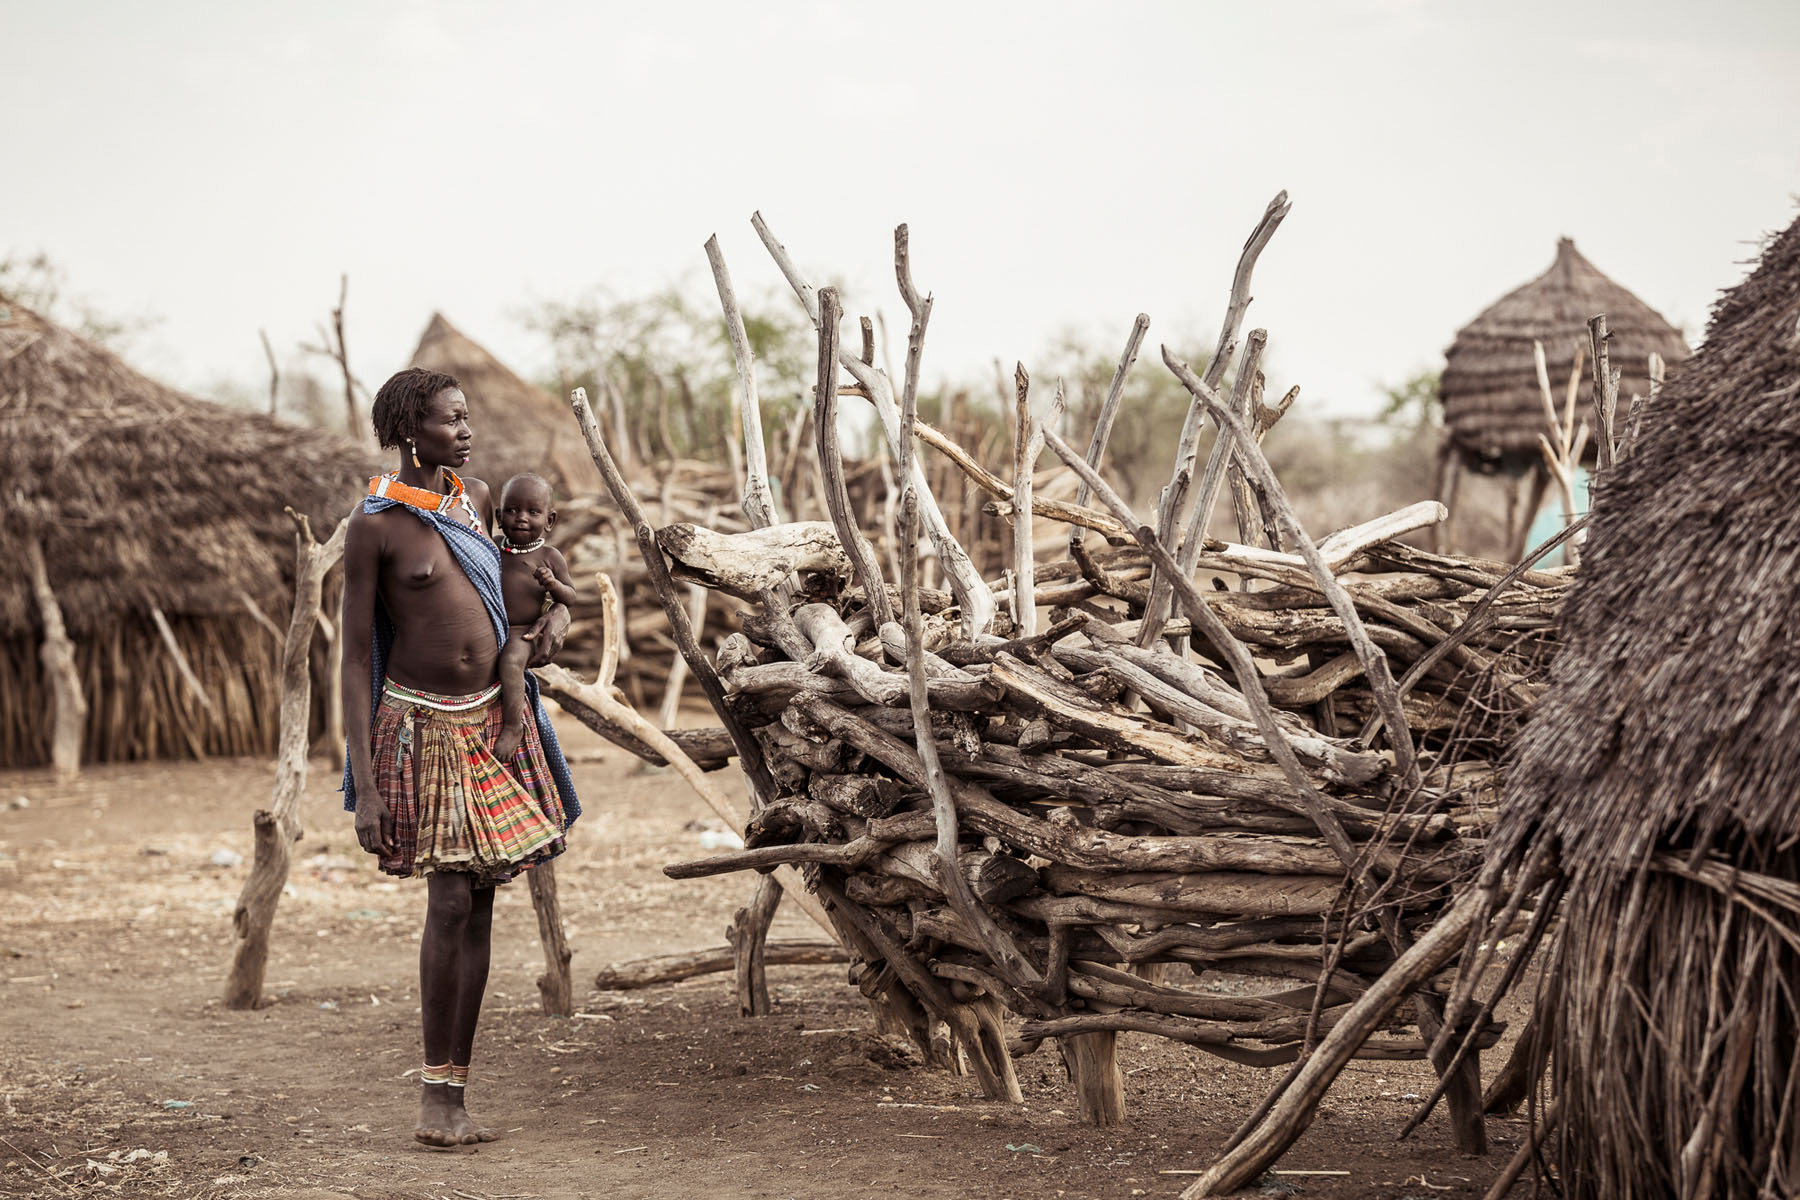 A Toposa woman with her child in the village © Joe Buergi